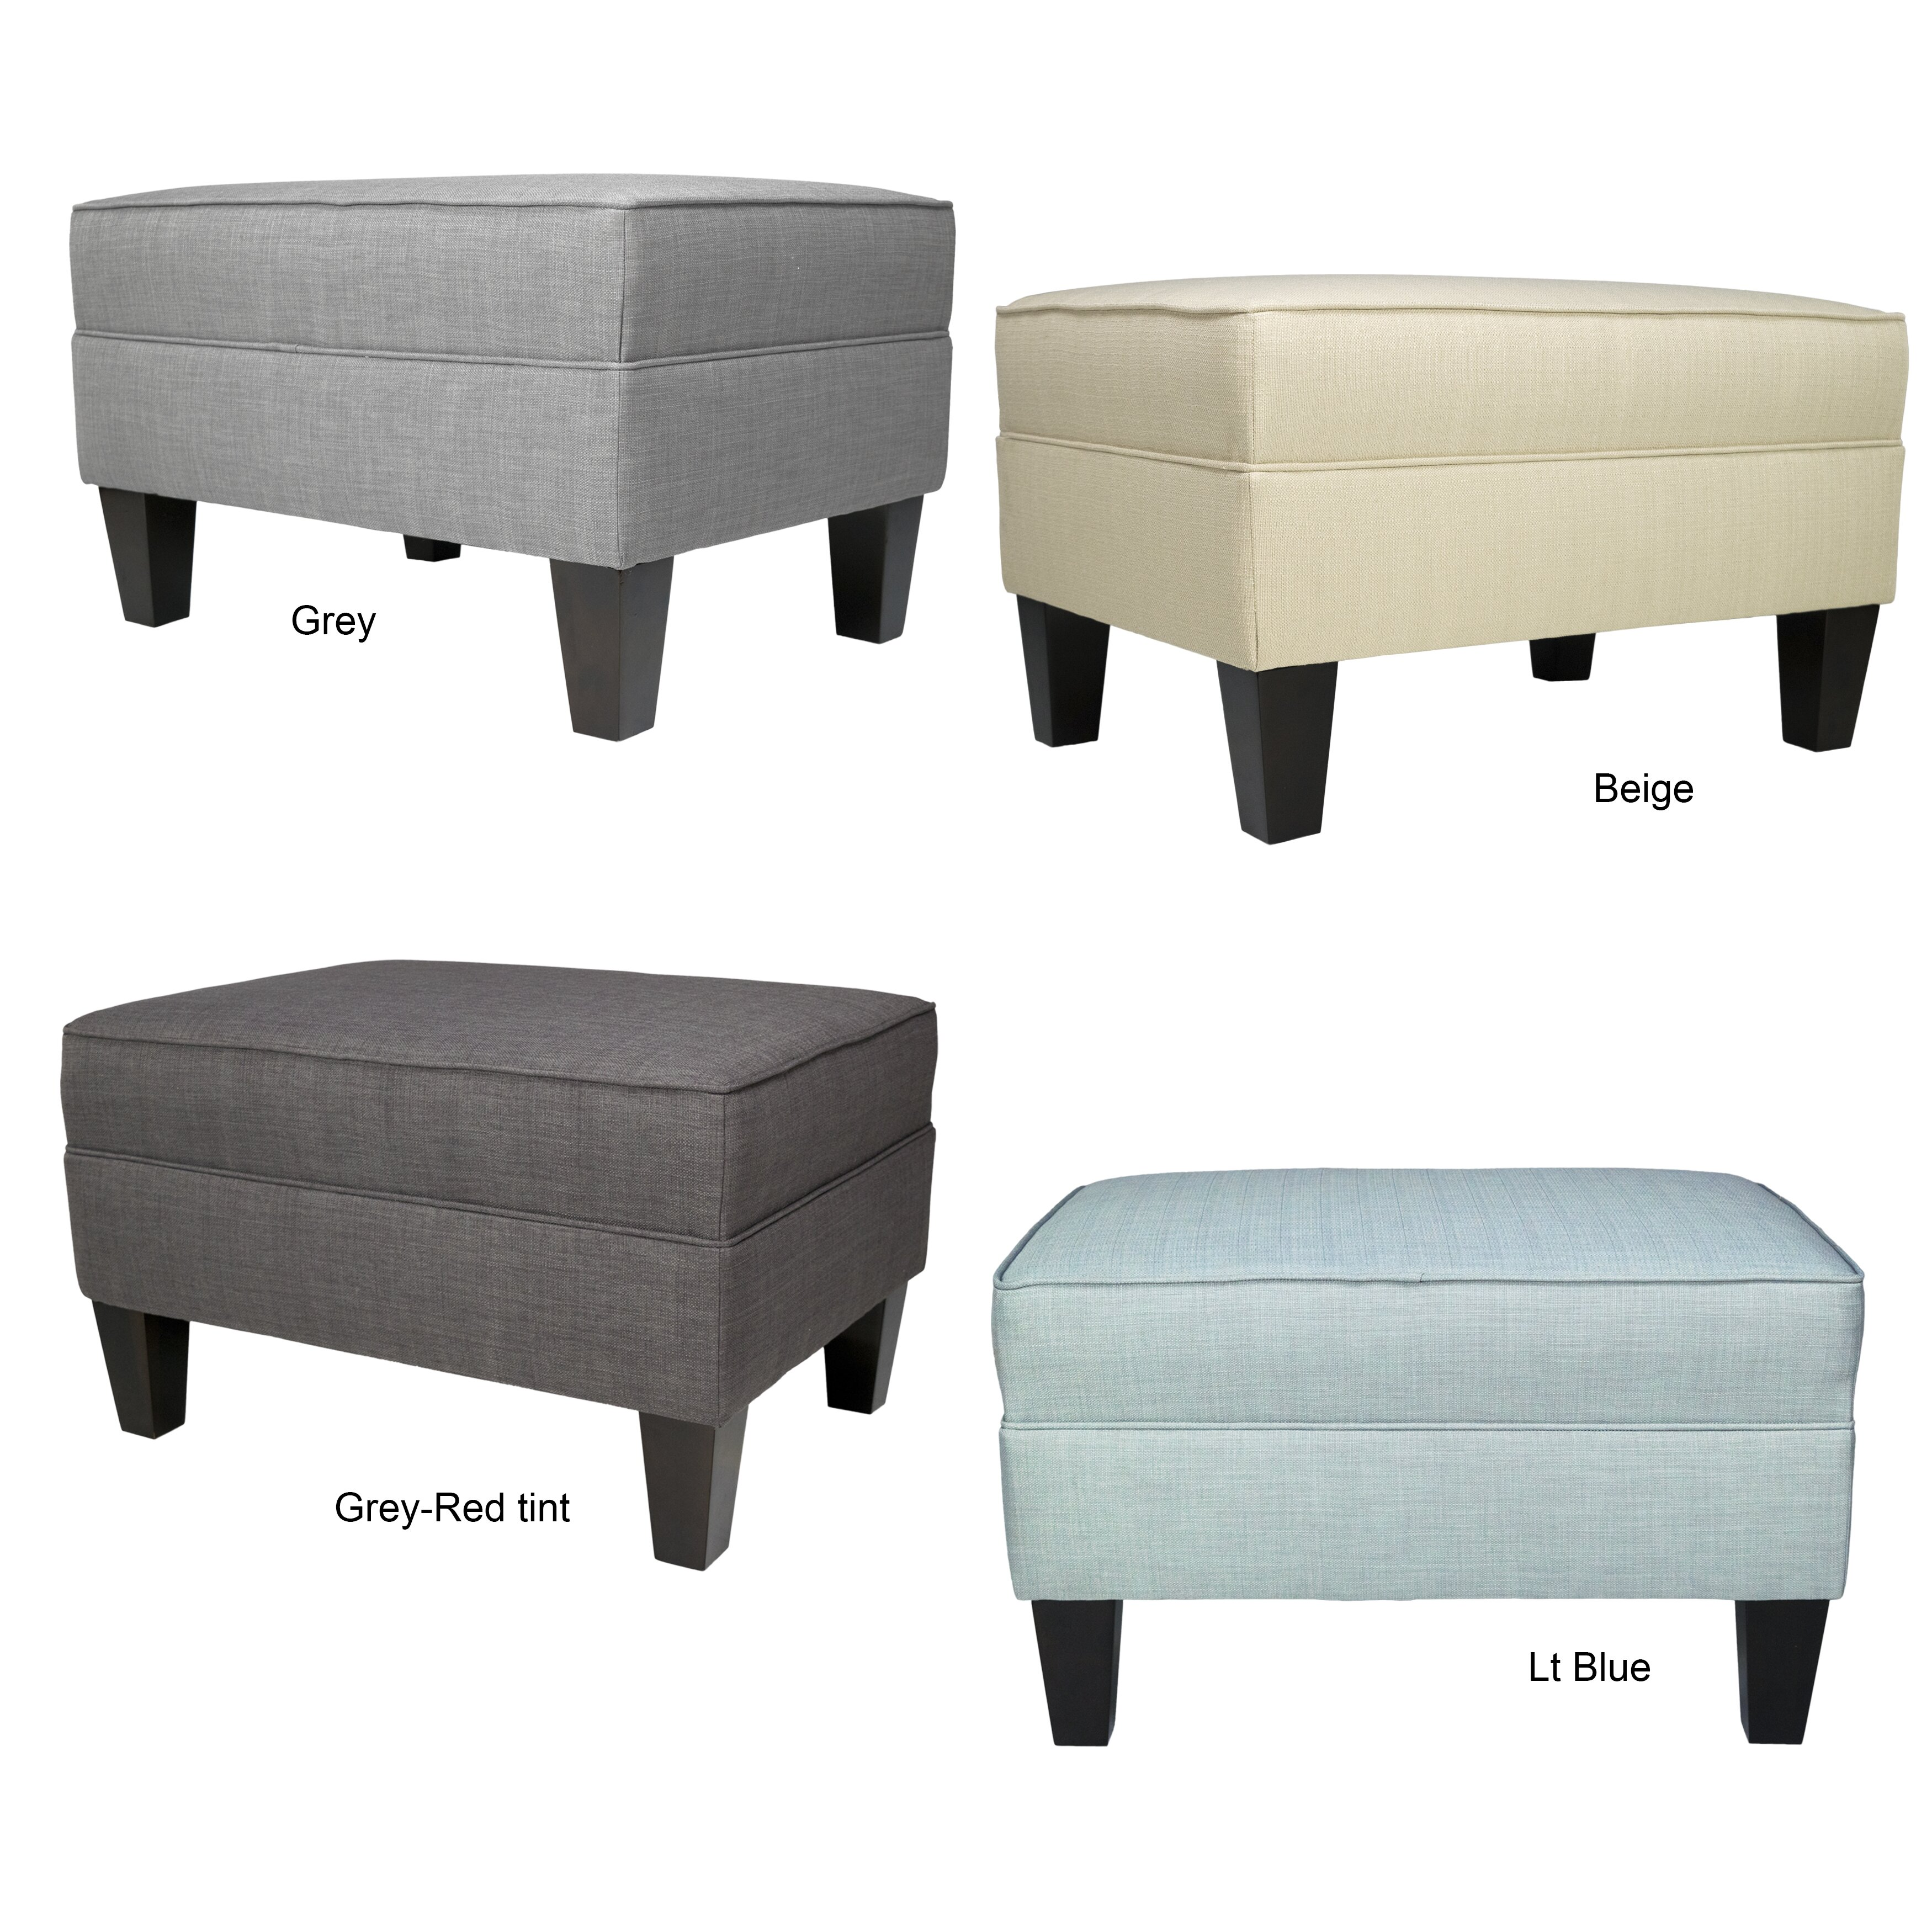 Mjlfurniture parker ottoman wayfair for Furniture 2 day shipping